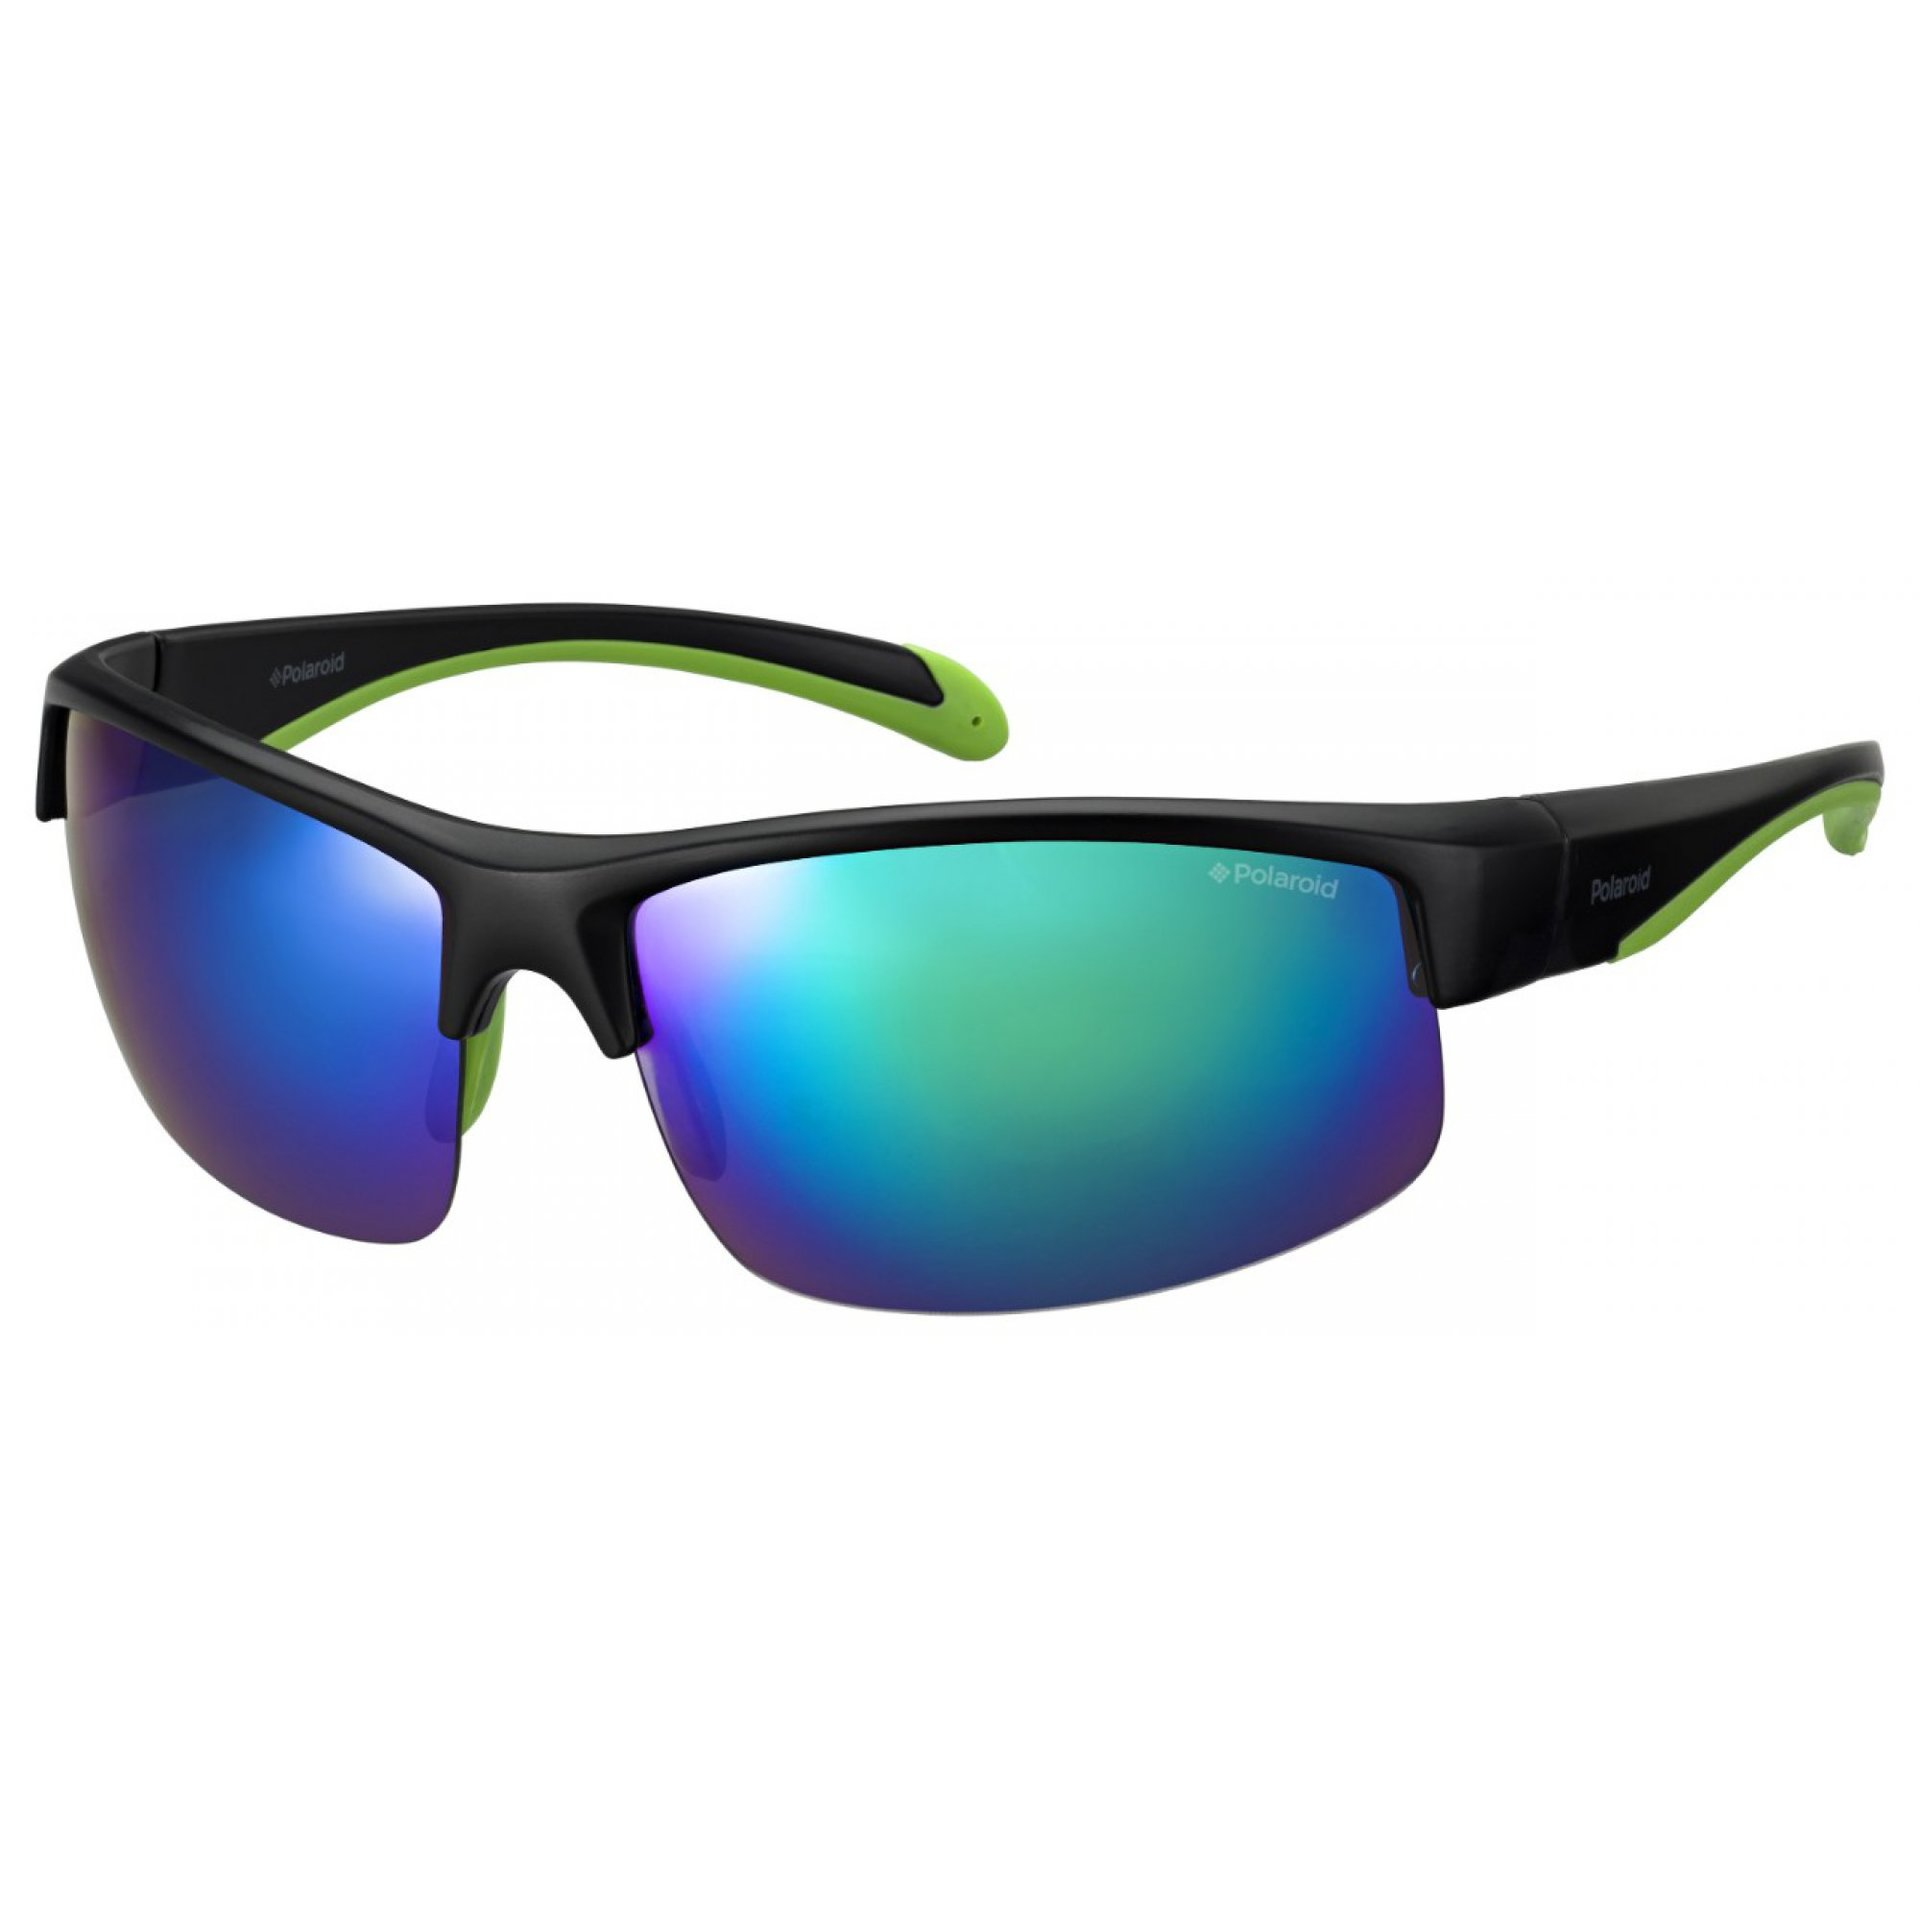 OKULARY POLAROID PLD 7019|S BLACK GREEN